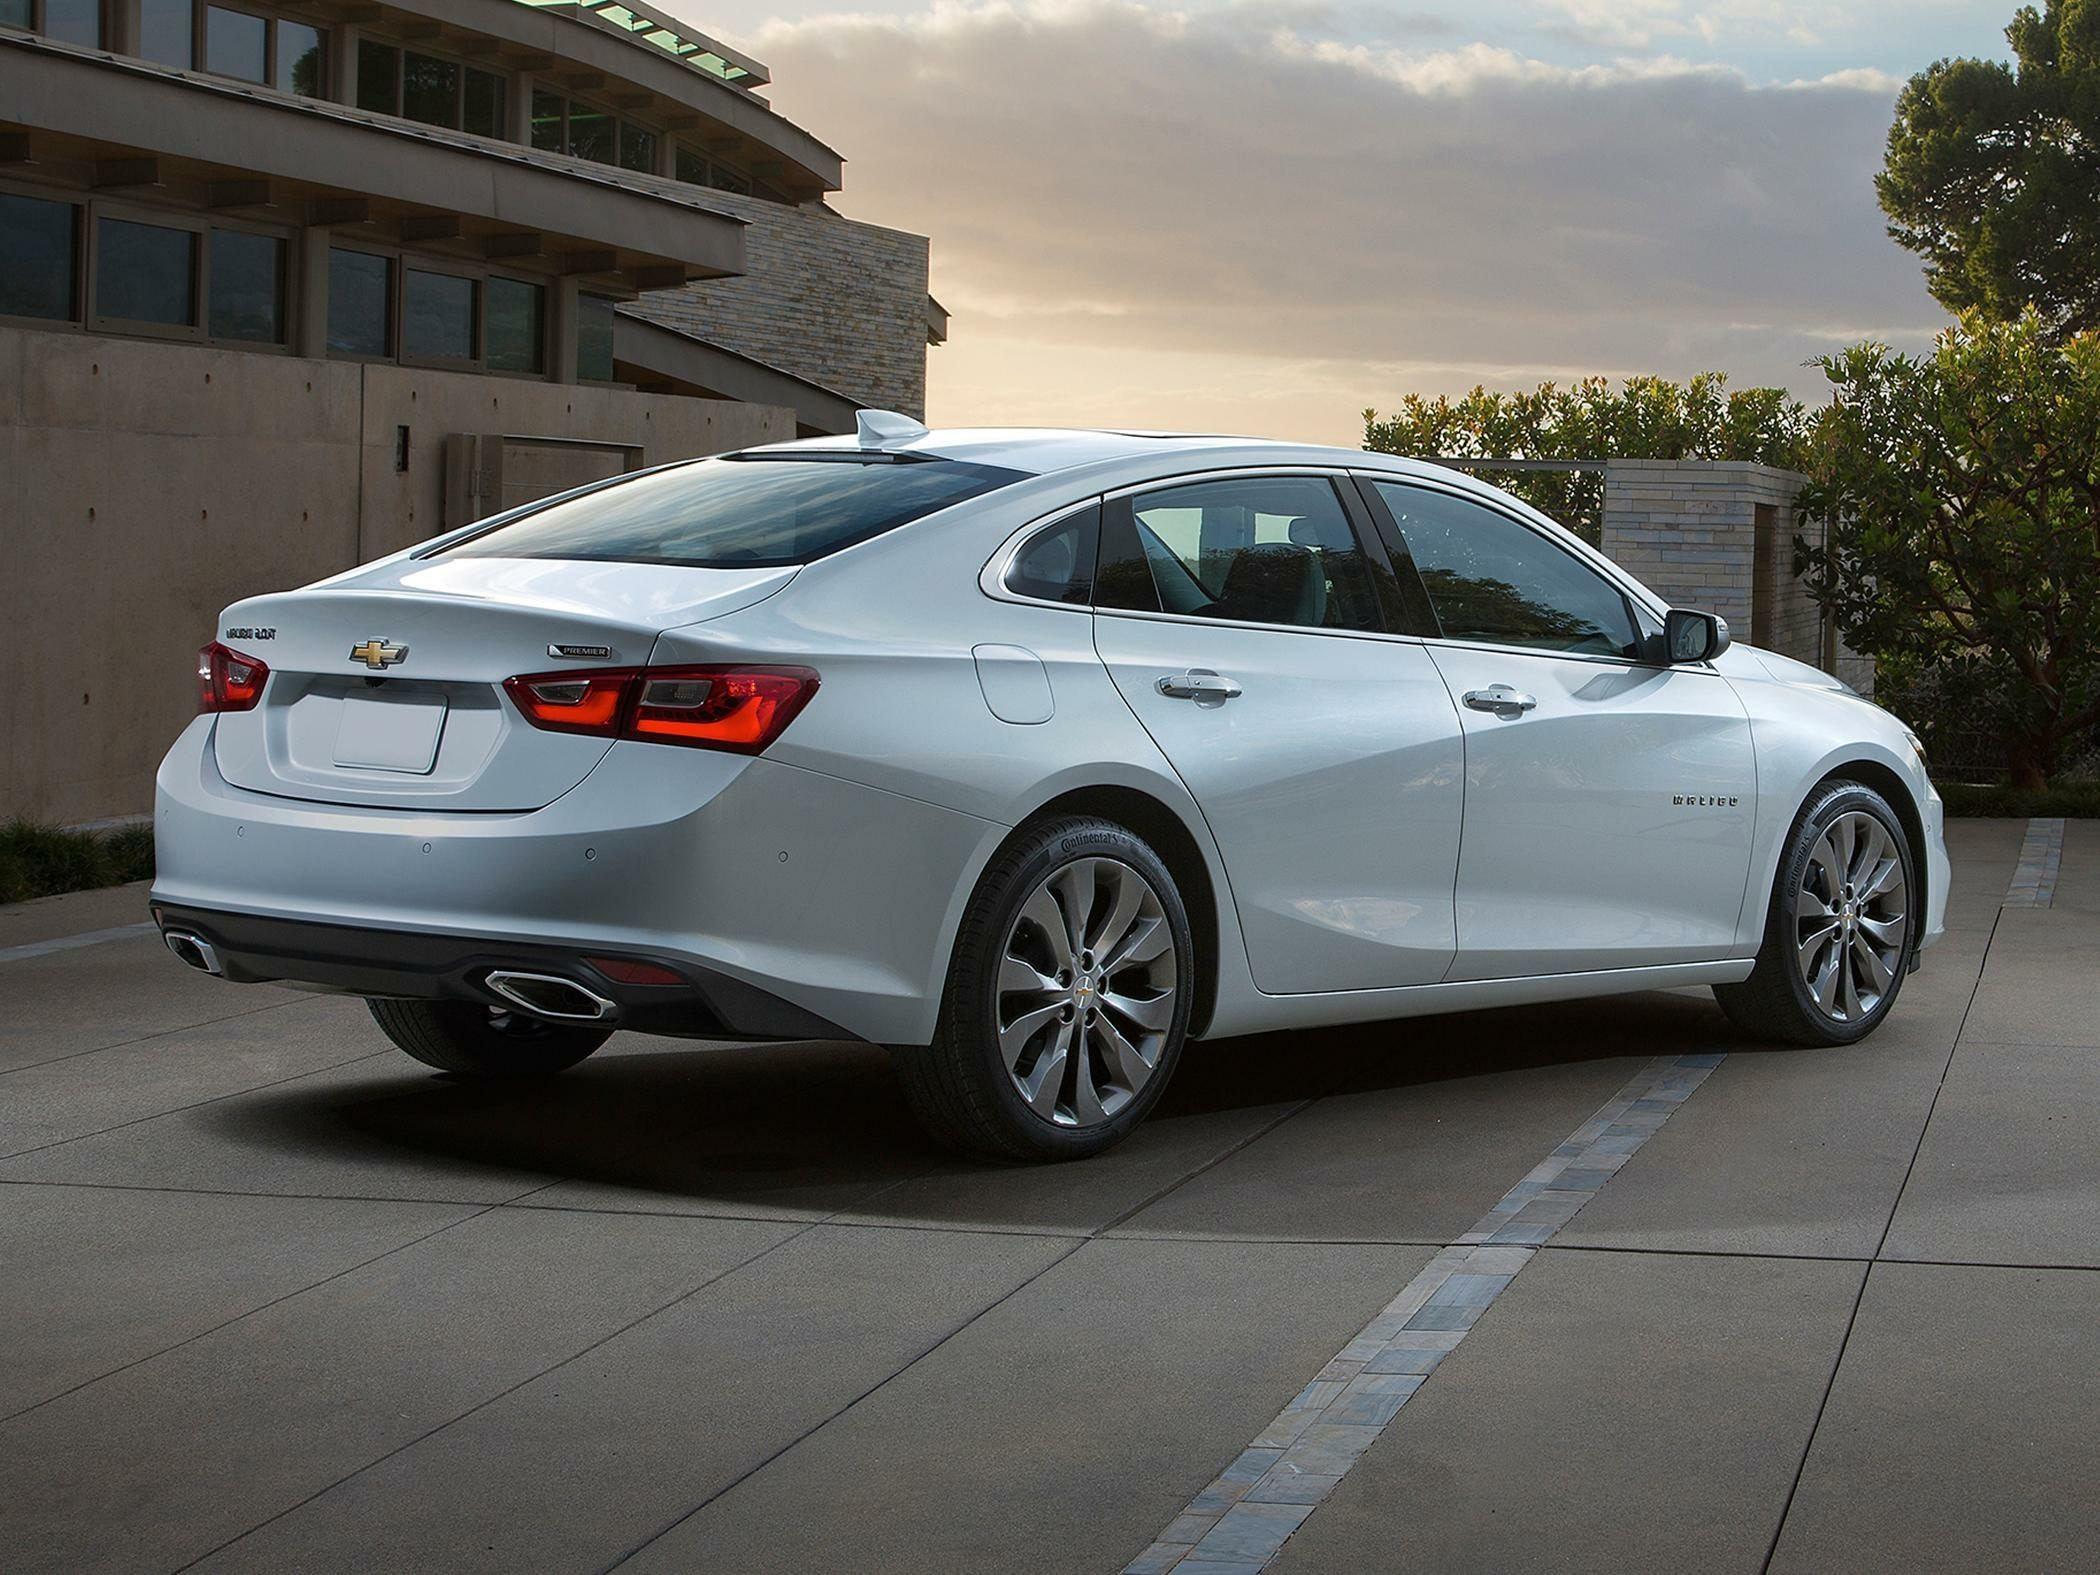 New 2018 Chevrolet Malibu Hybrid Price Photos Reviews Safety In